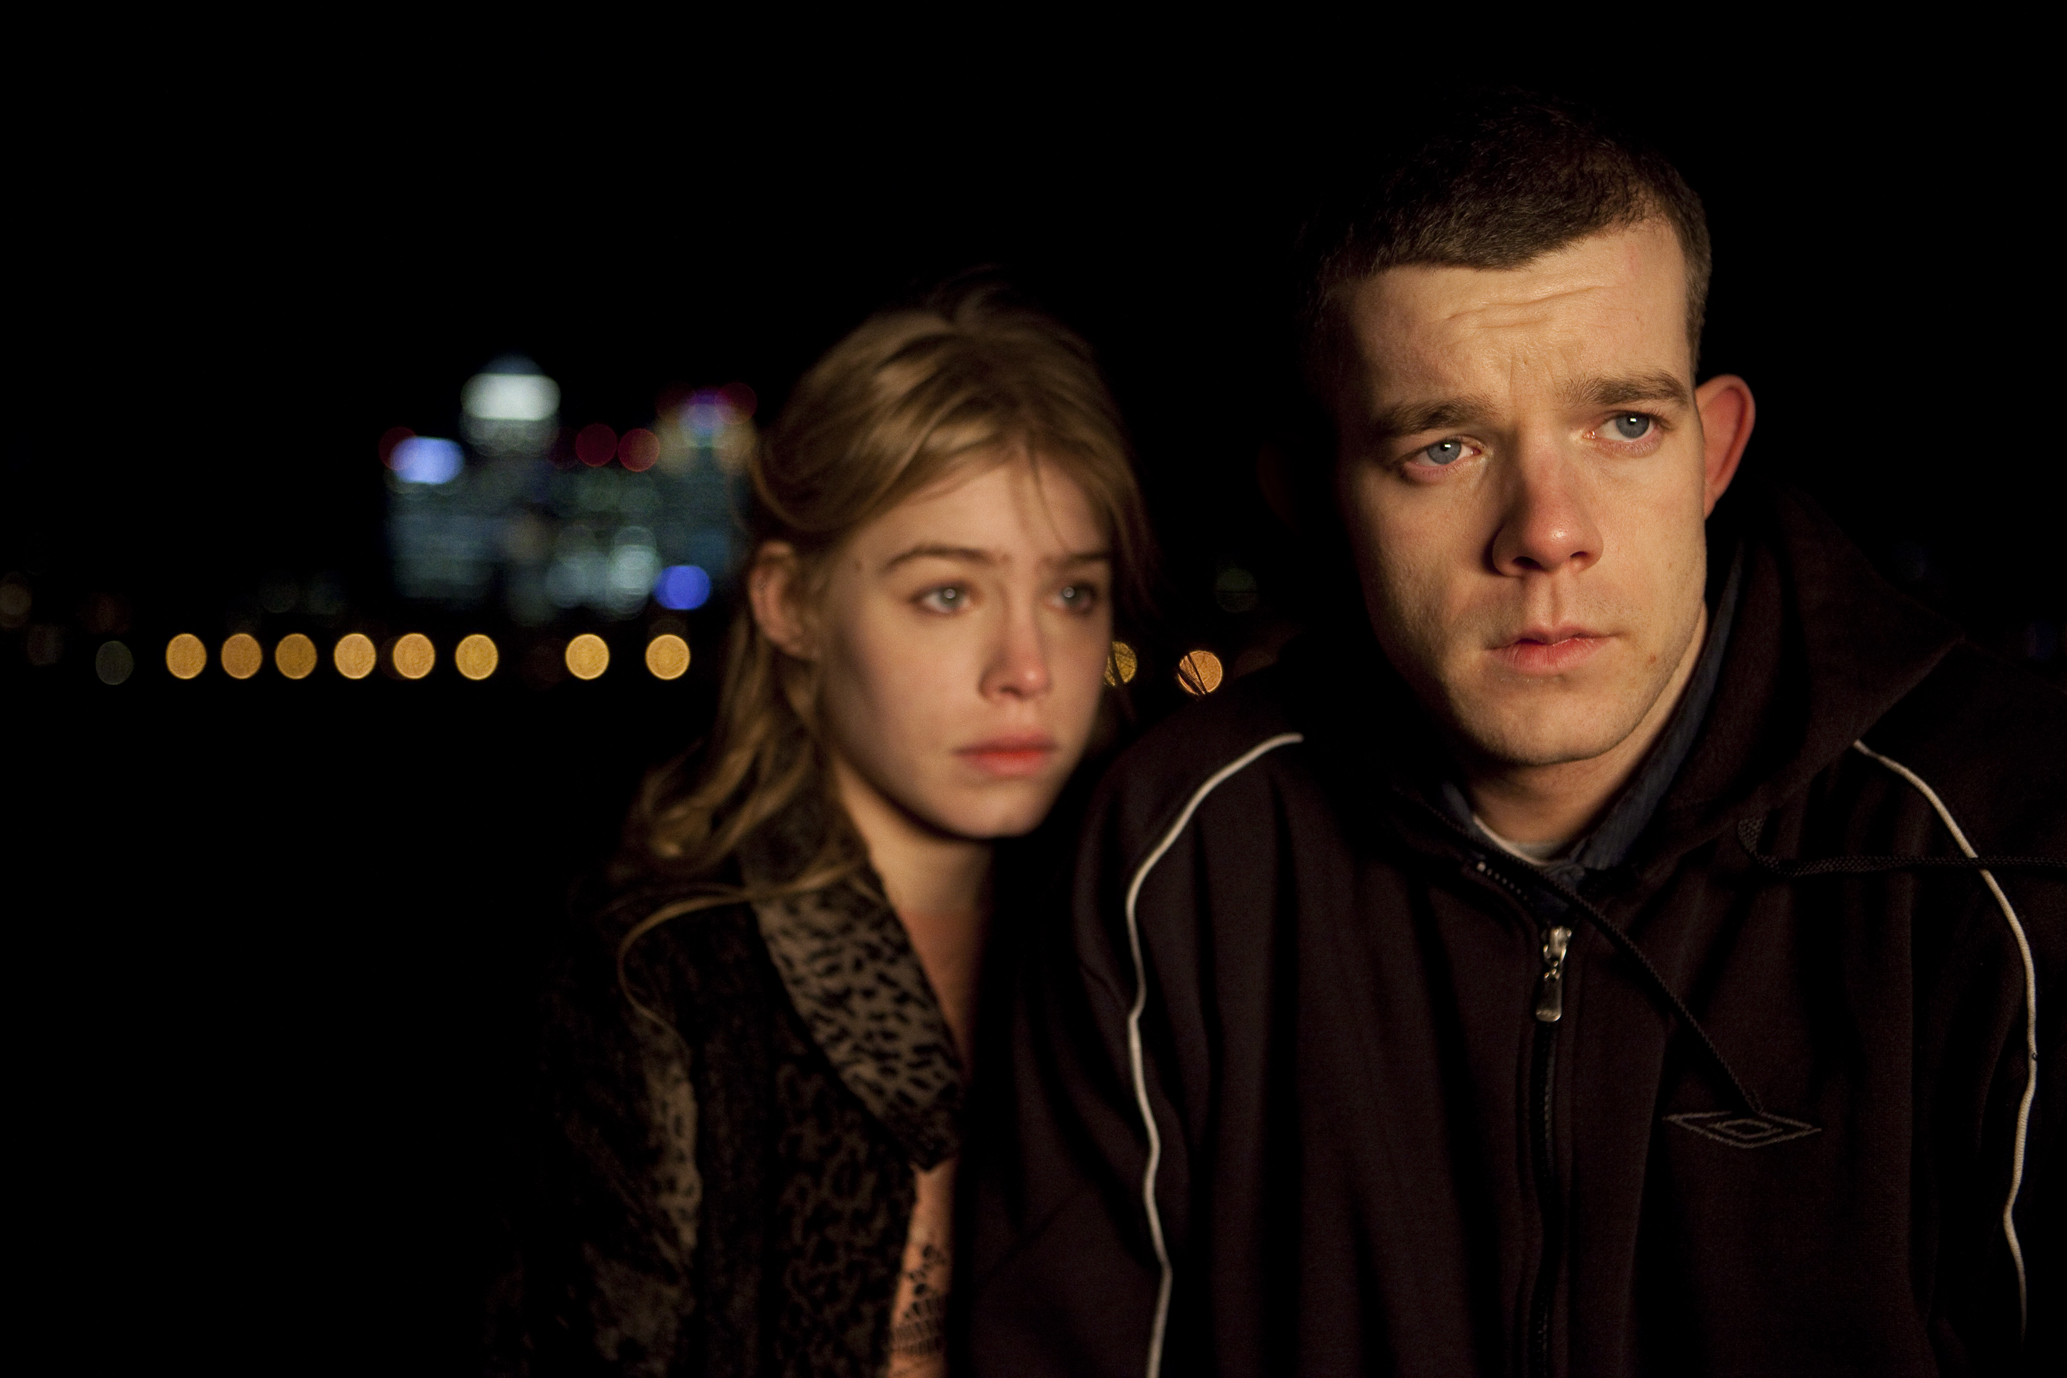 Russell Tovey explores his dangerous love story